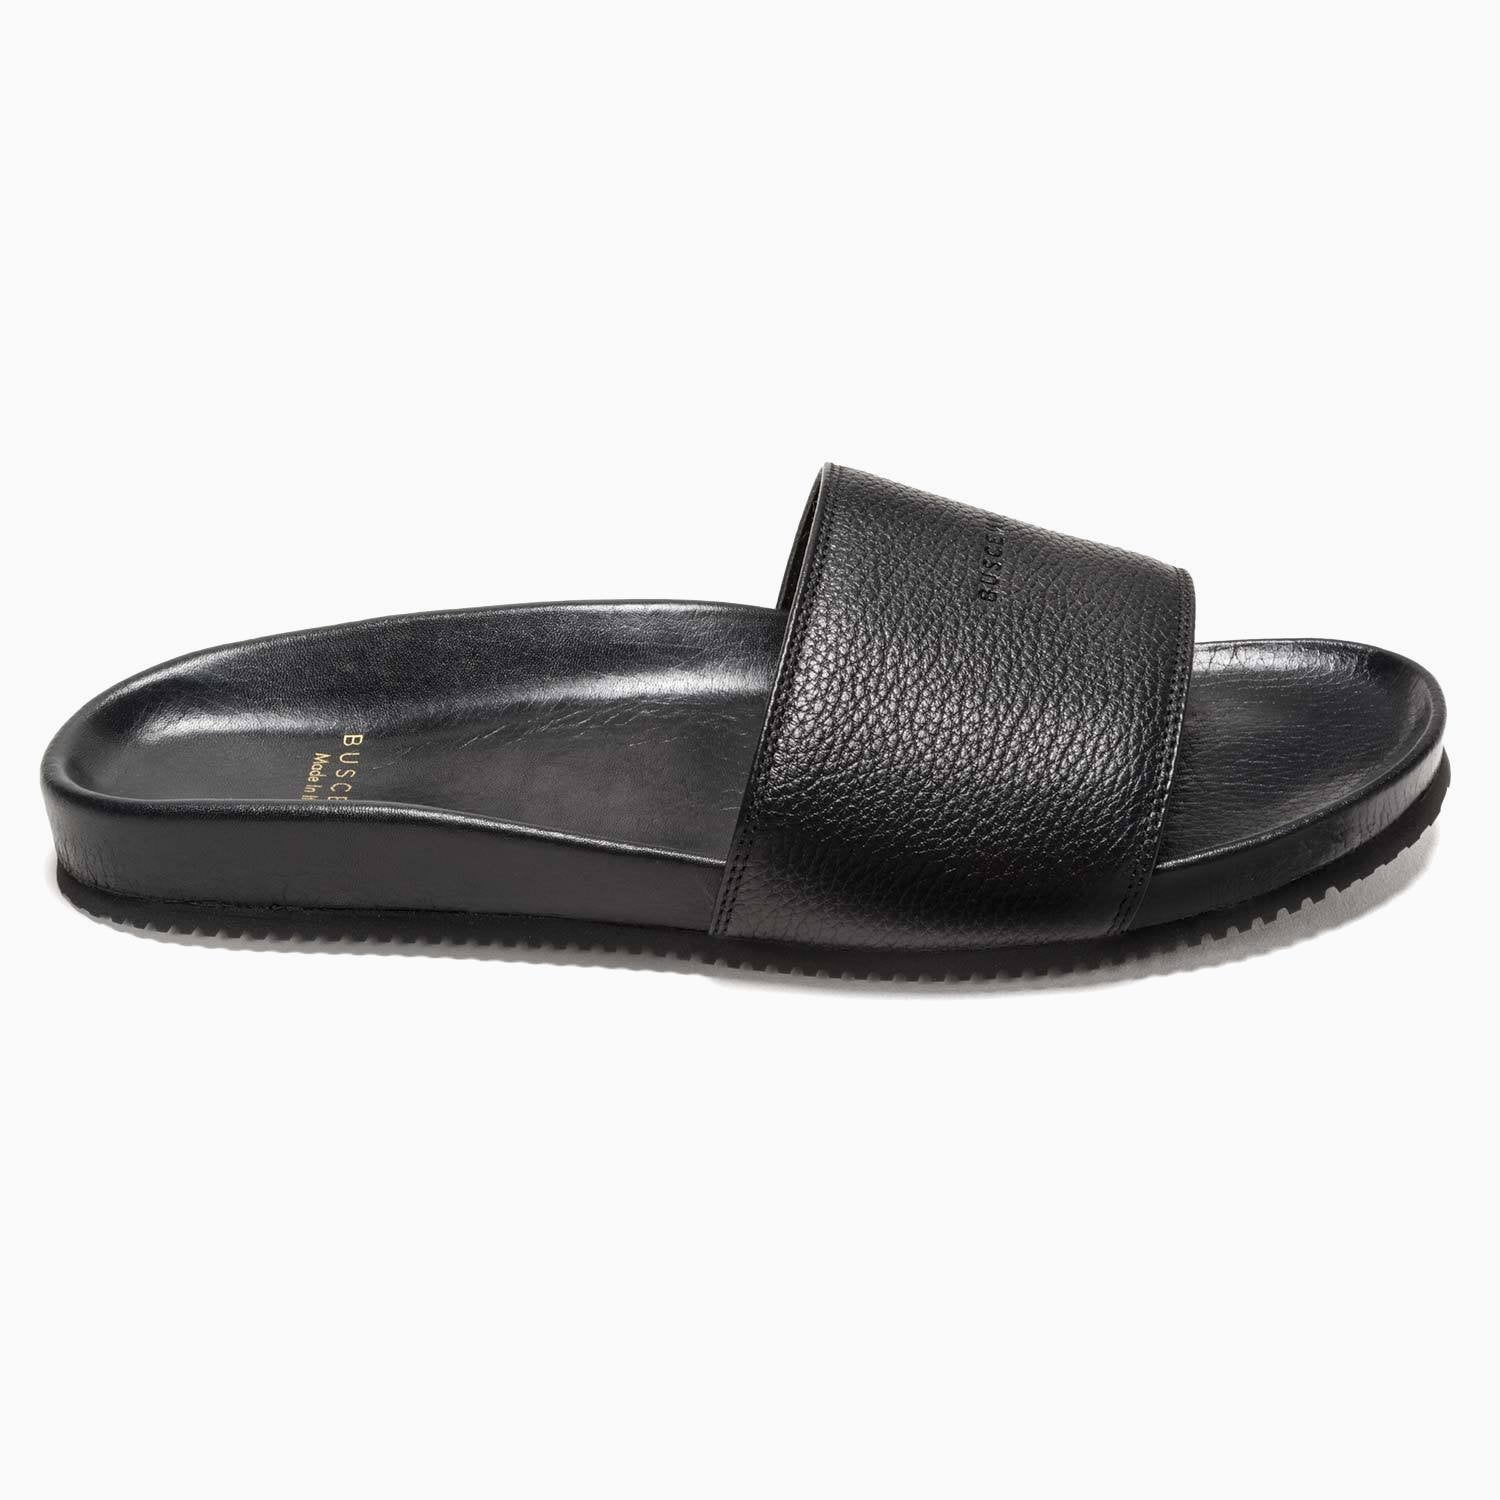 Women's Slides | Black-Buscemi